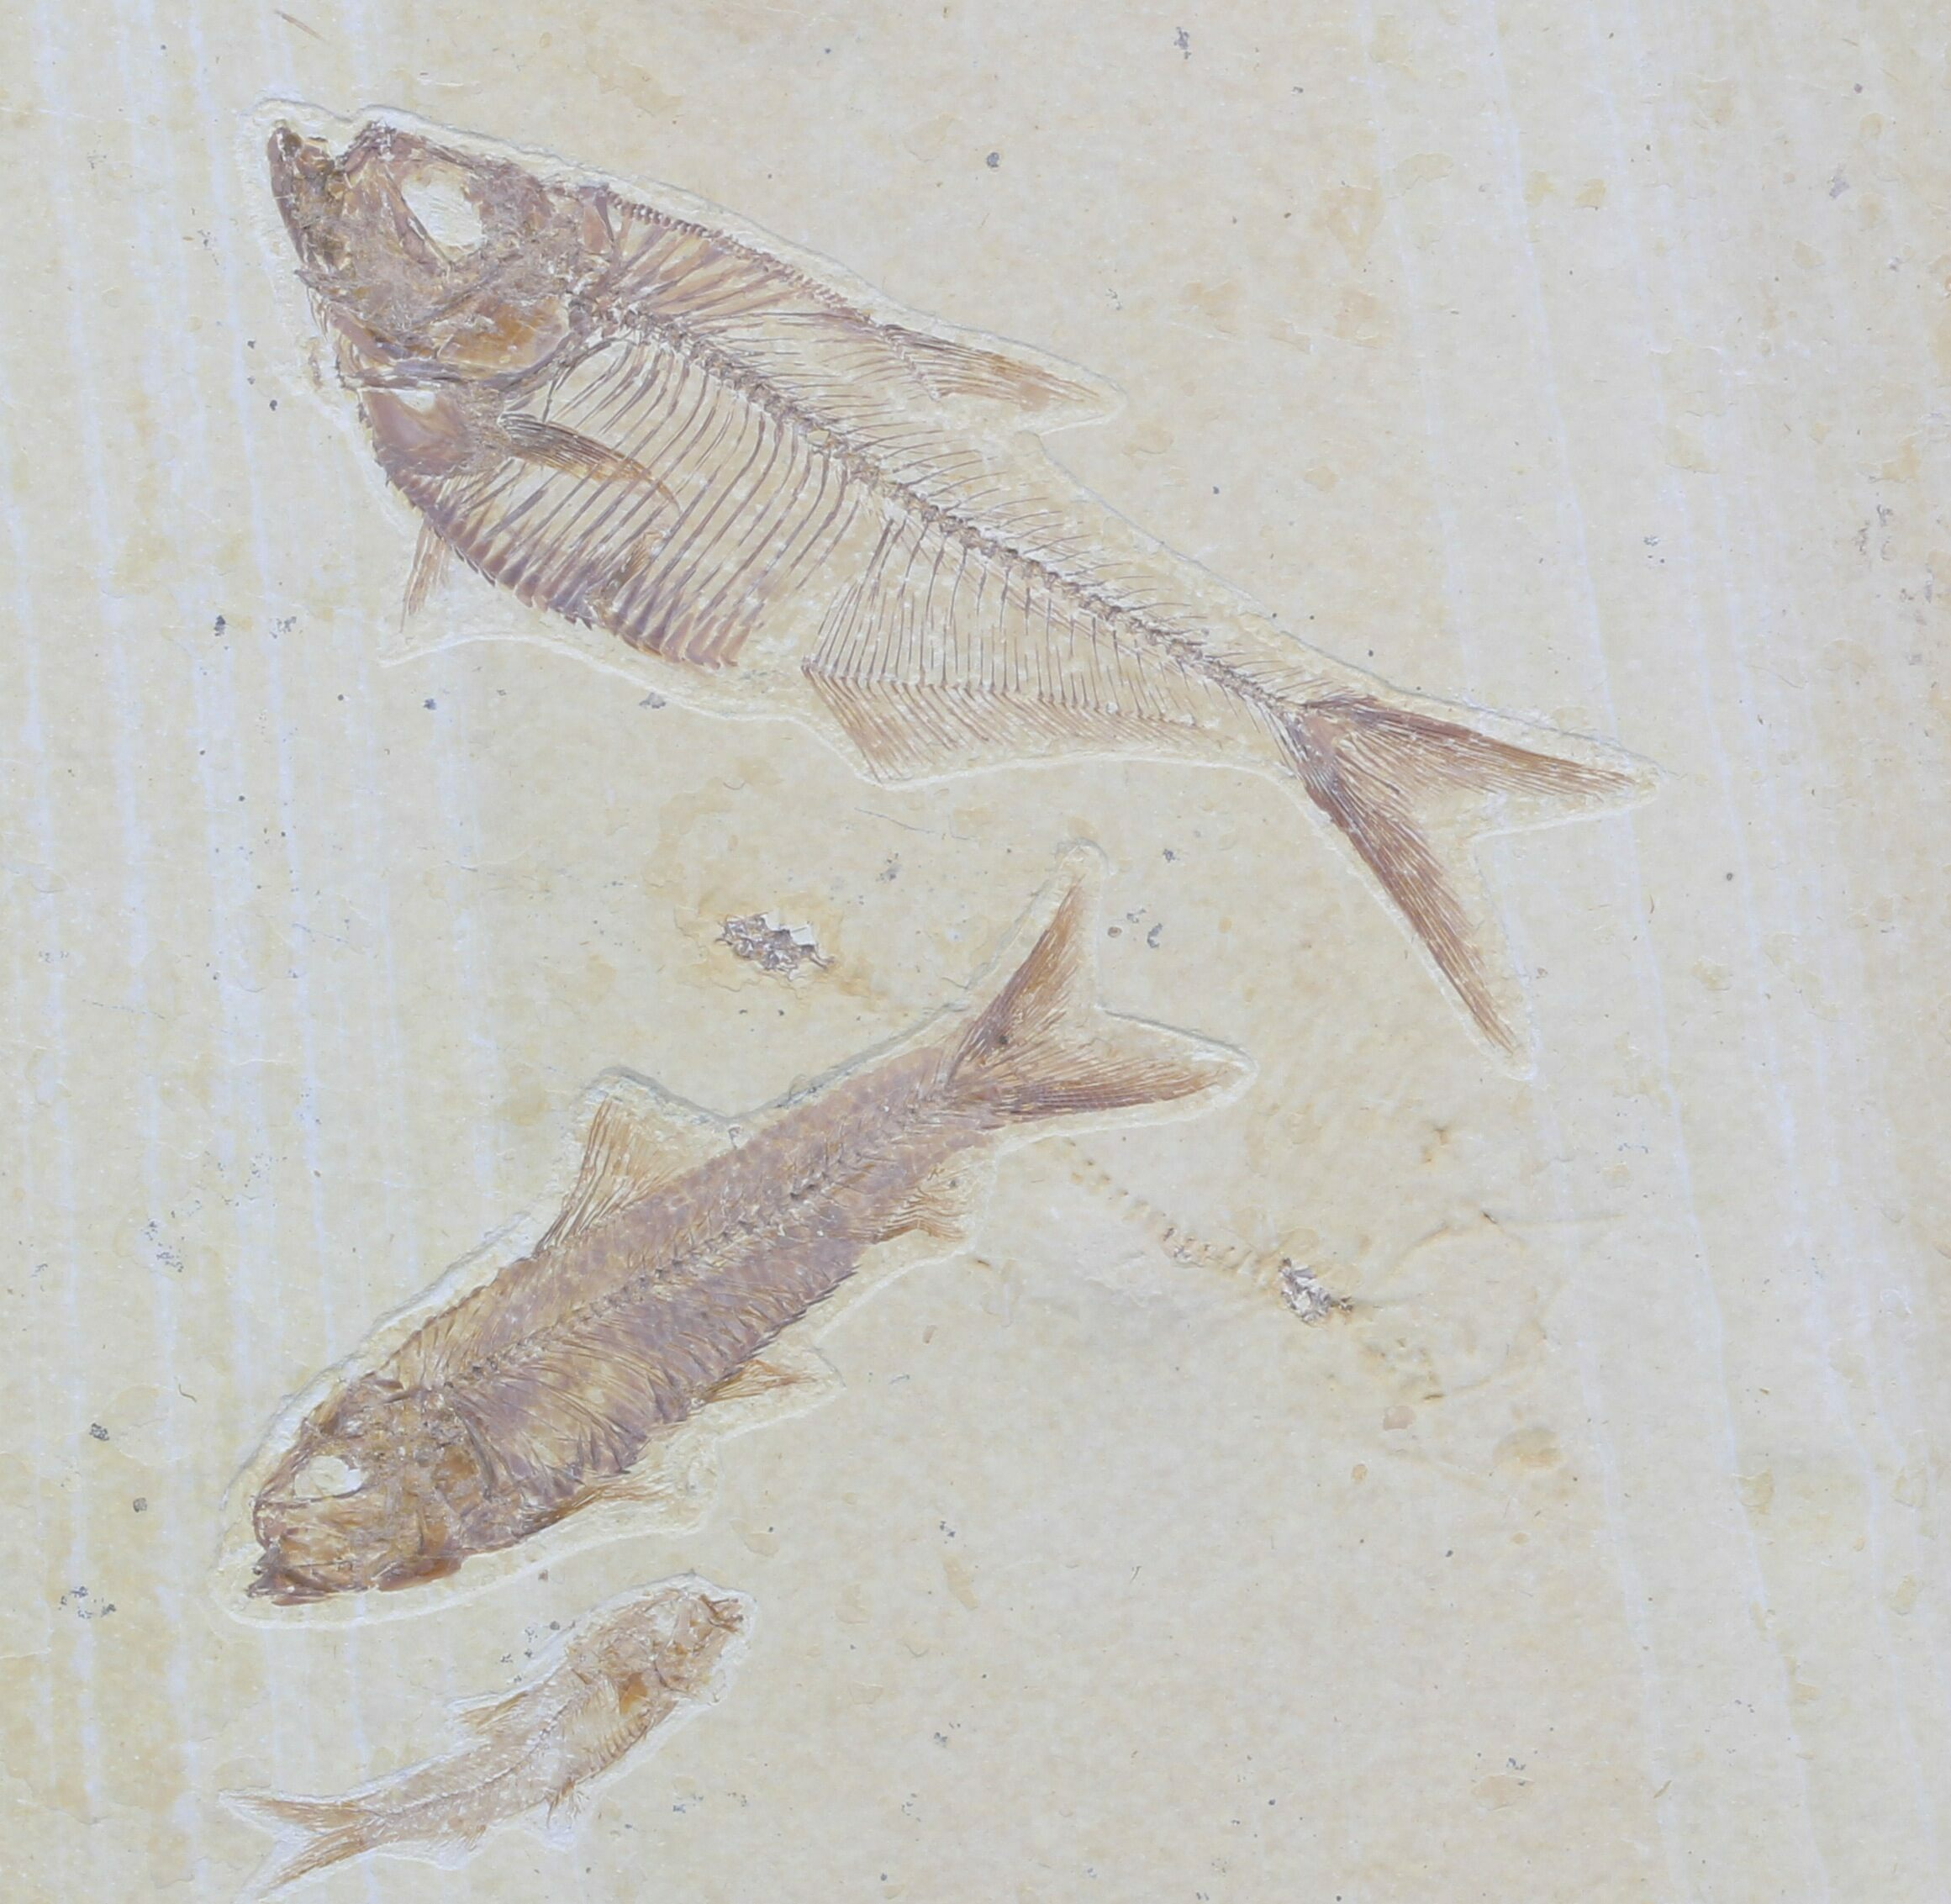 Diplomystus knightia fossil fish association for sale for Fish fossils for sale